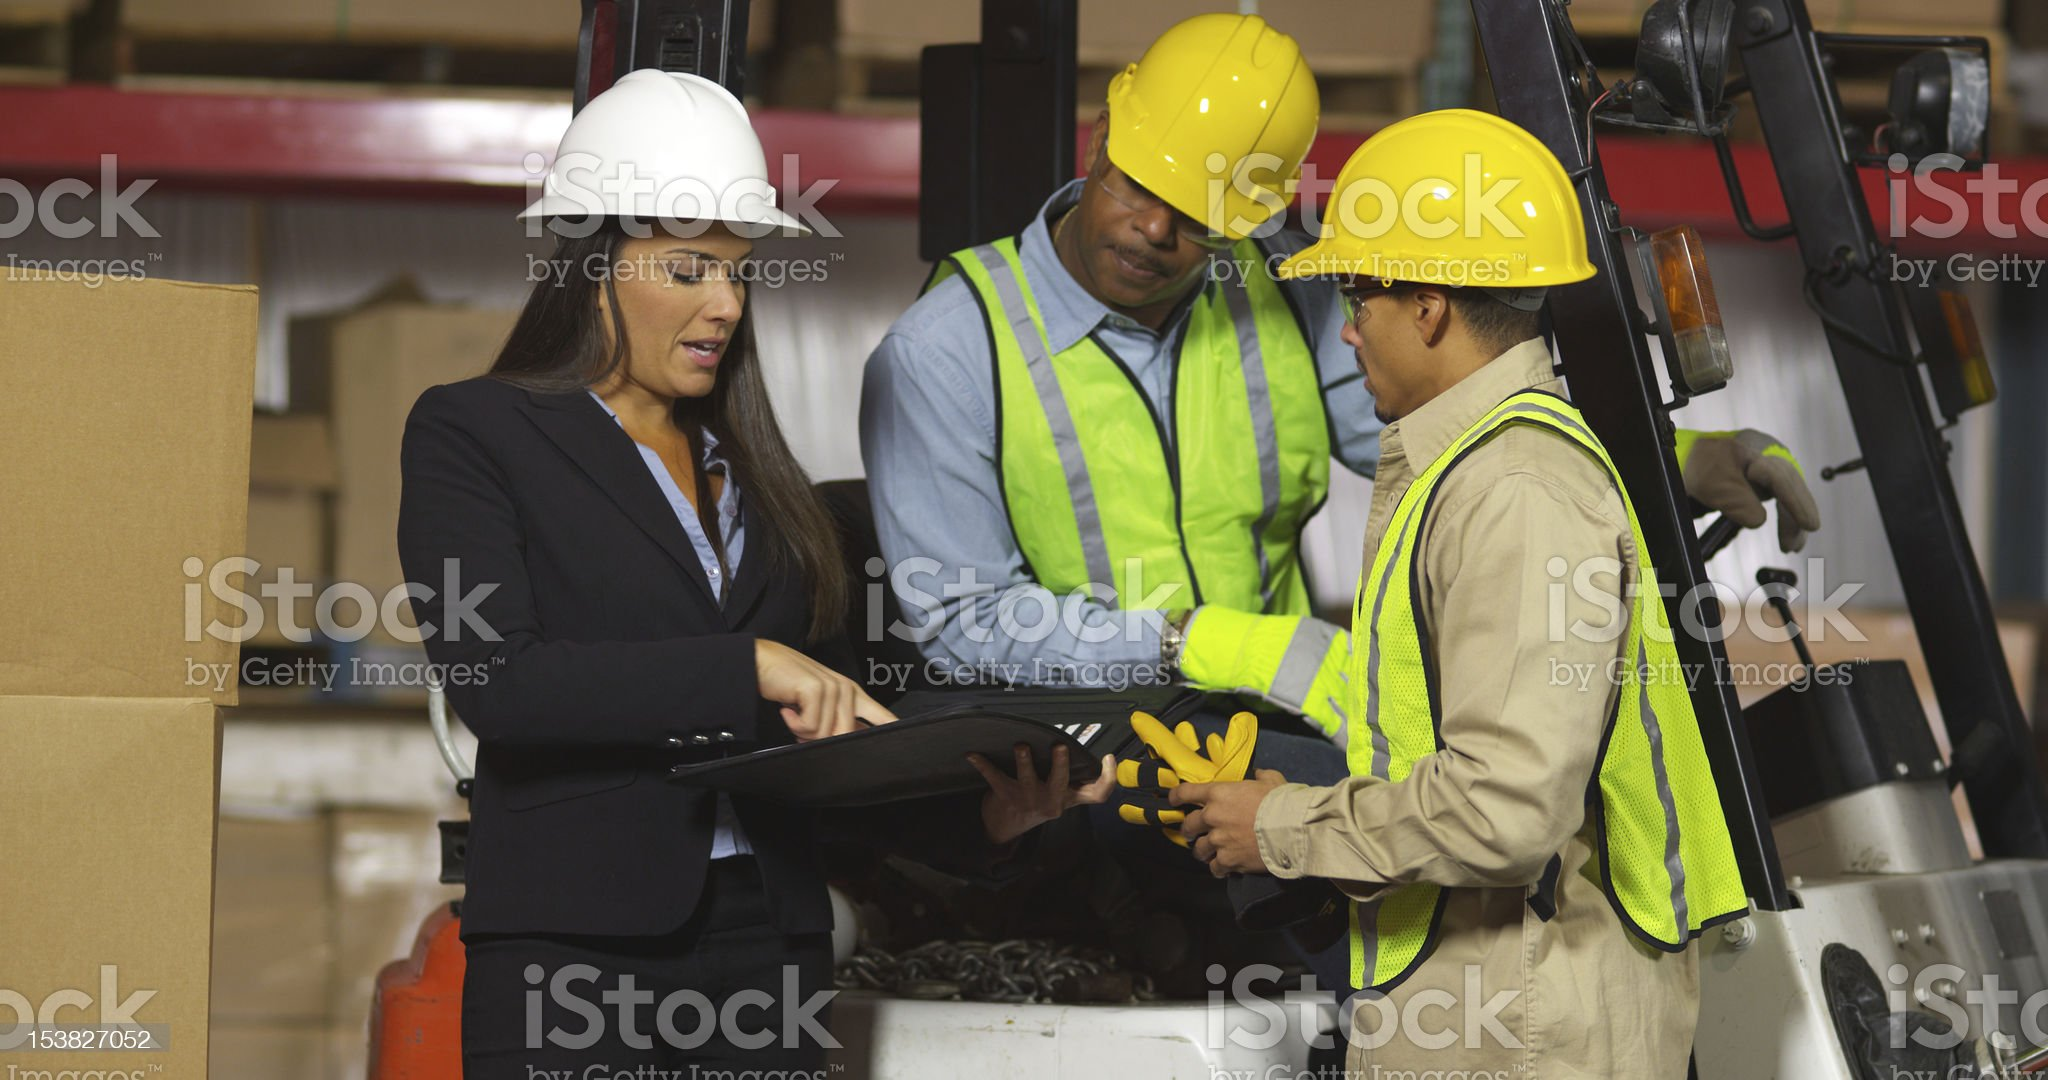 People working together in shipping warehouse royalty-free stock photo